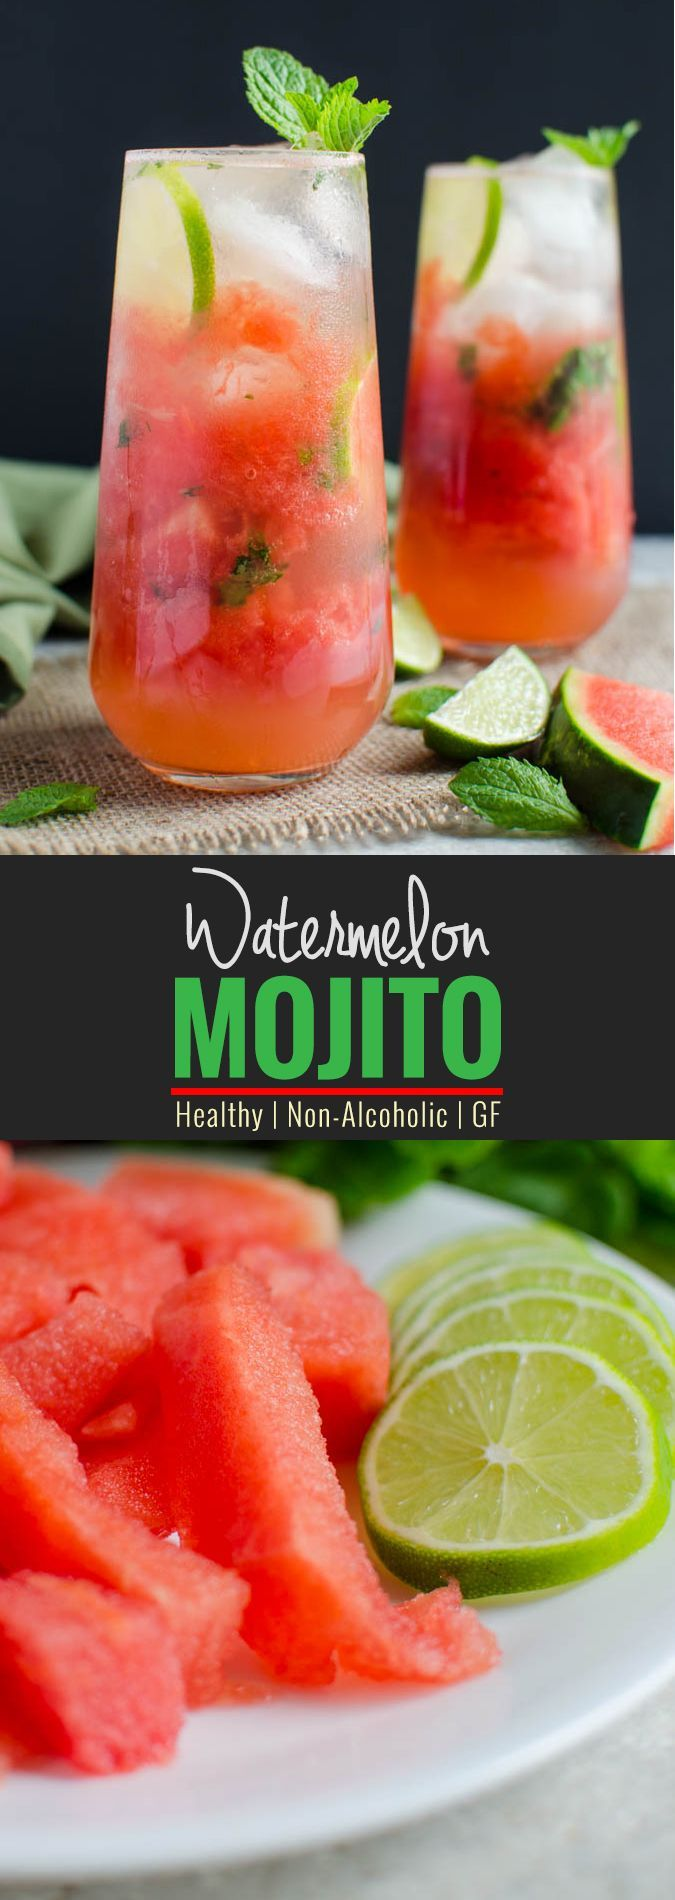 Watermelon Mojito Recipe- Give refreshing twist to fresh watermelons. It is healthy, naturally sweetened and non-alcoholic drink. Can easily turned into alcoholic drink if you want to | watchwhatueat.com (refreshing alcoholic drinks kids)